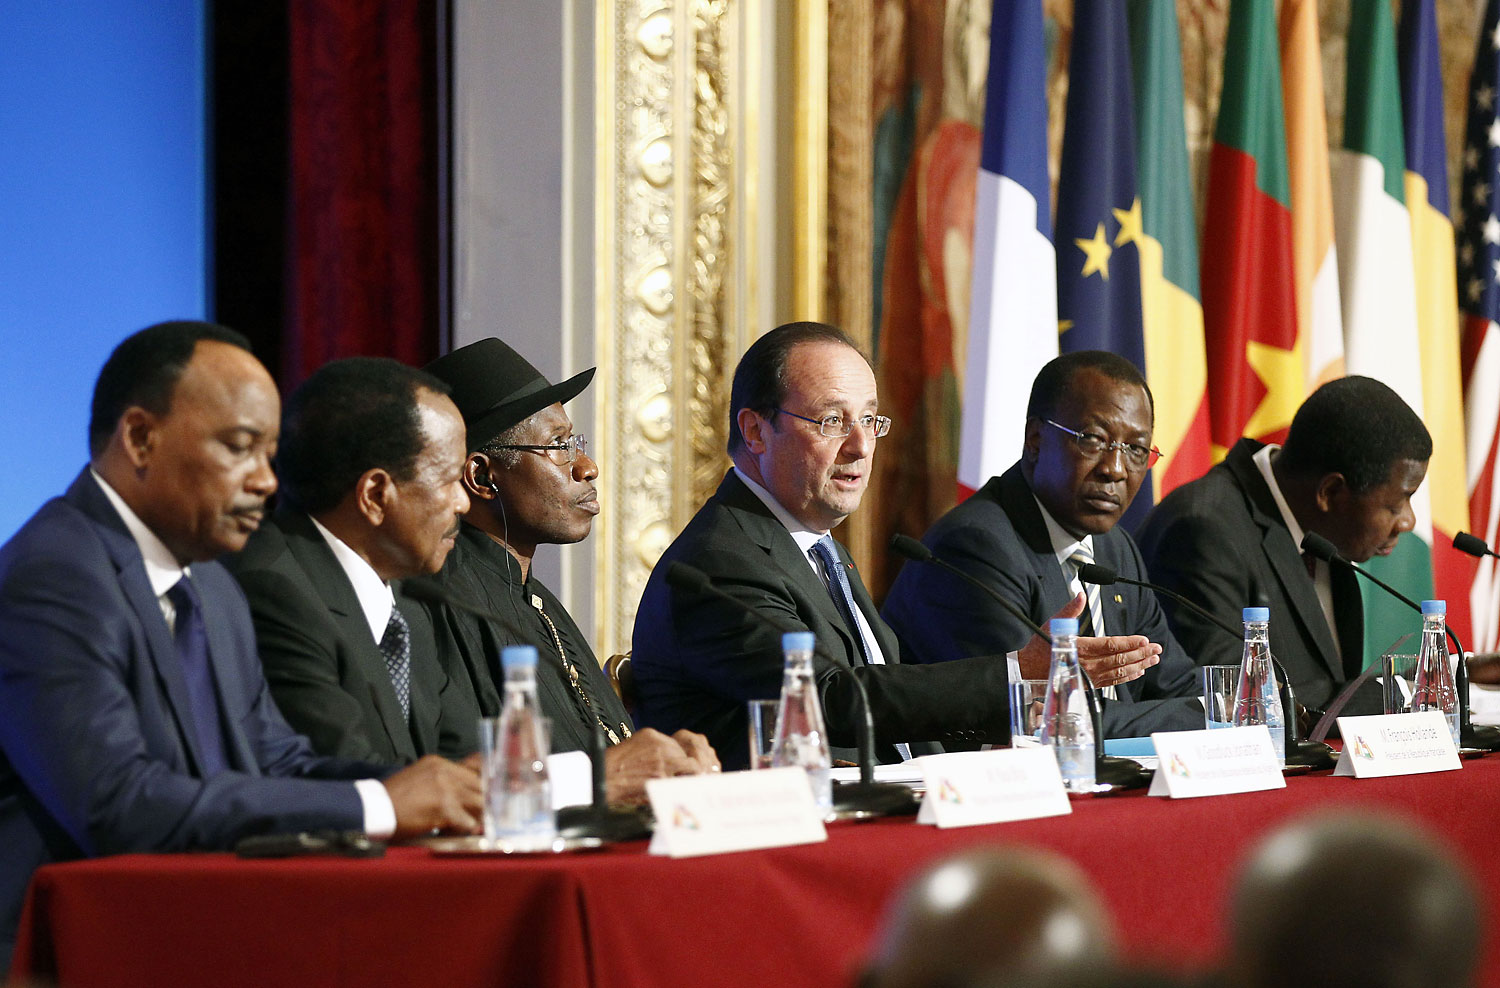 From left: Niger's President Mahamadou Issoufou, Cameroon's President Paul Biya, Nigeria's President Goodluck Jonathan, French President François Hollande, Chad's President Idriss Déby and Benin's President Thomas Boni Yayi attend a  joint press conference at the Élysée Palace in Paris on May 17, 2014